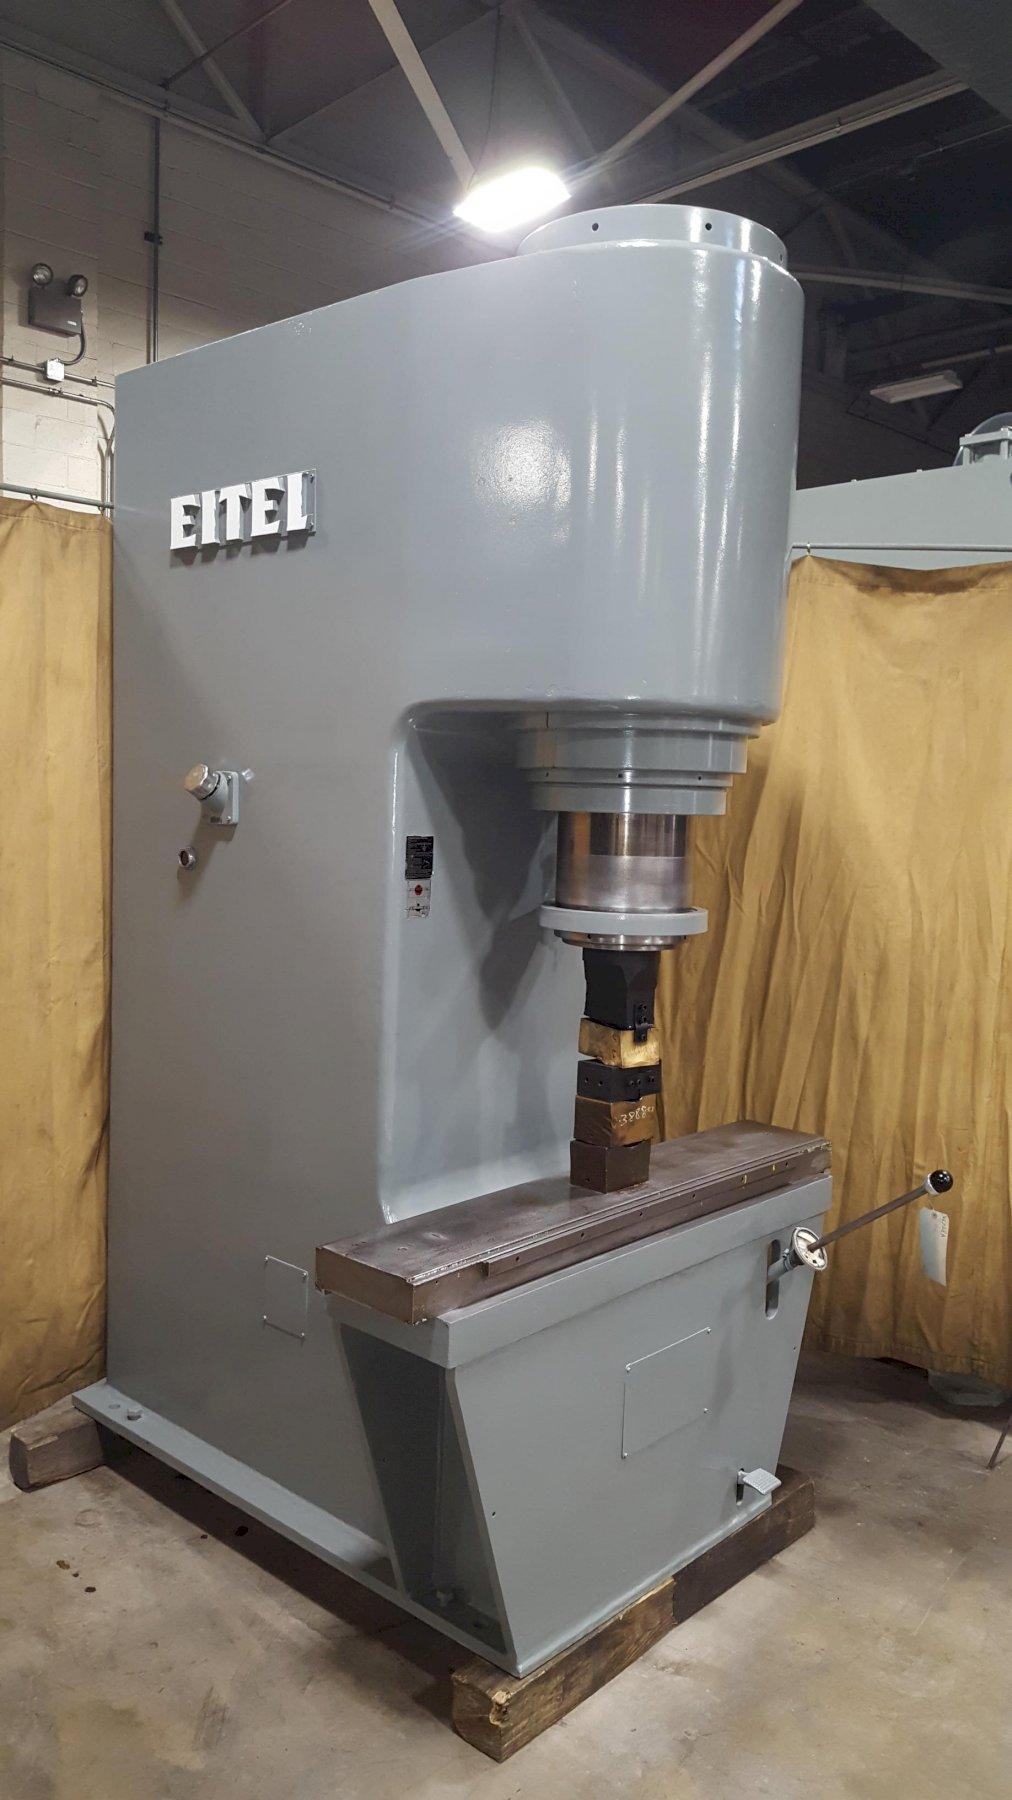 Eitel Model RP-200 Straightening Press